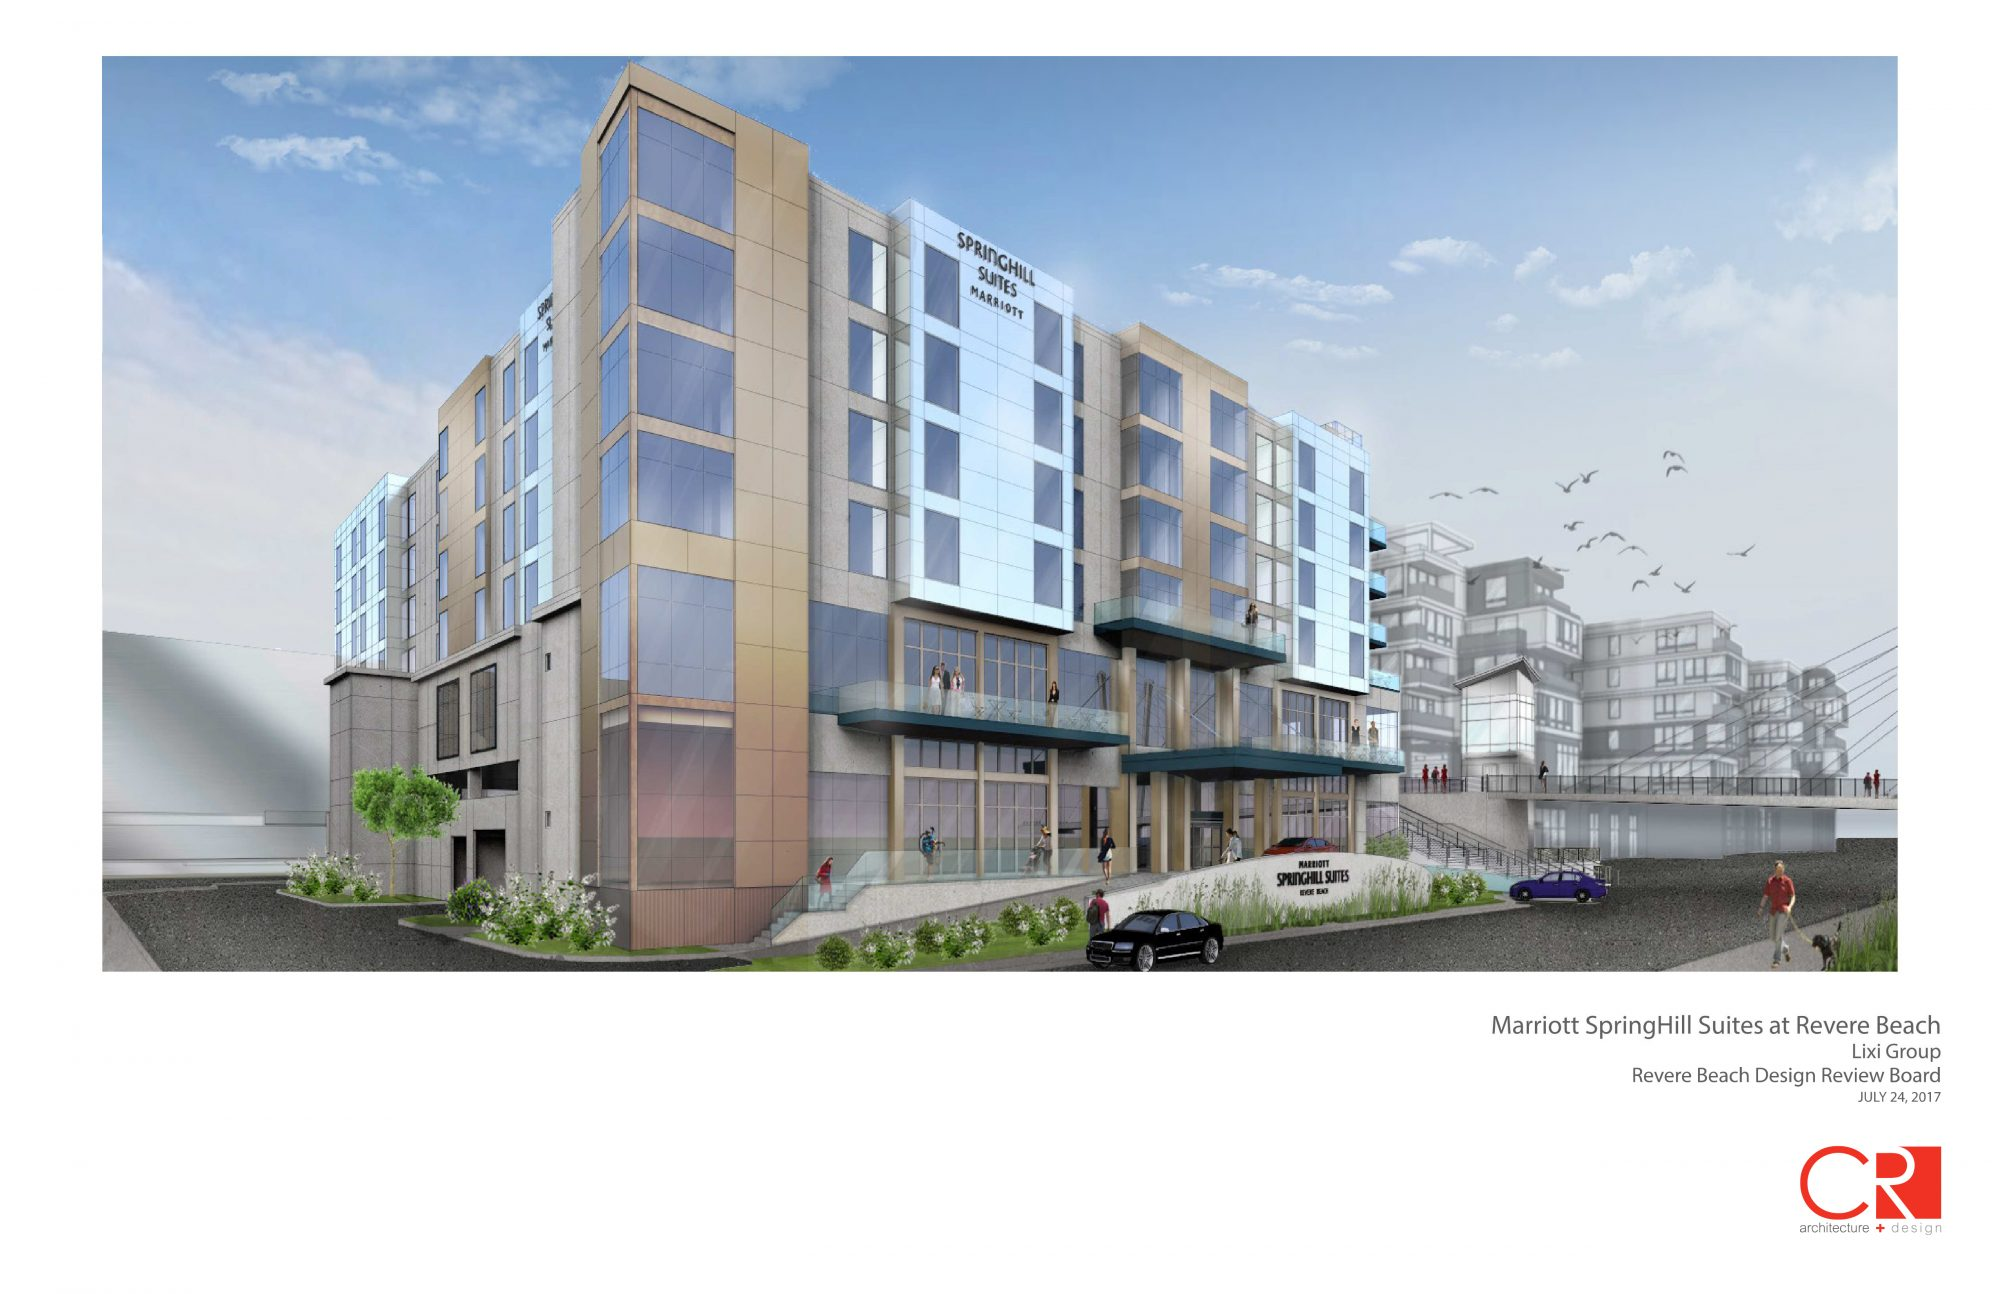 8 Hotels Are On Track In Revere Under Construction Or The Permitting Stages Itemlive